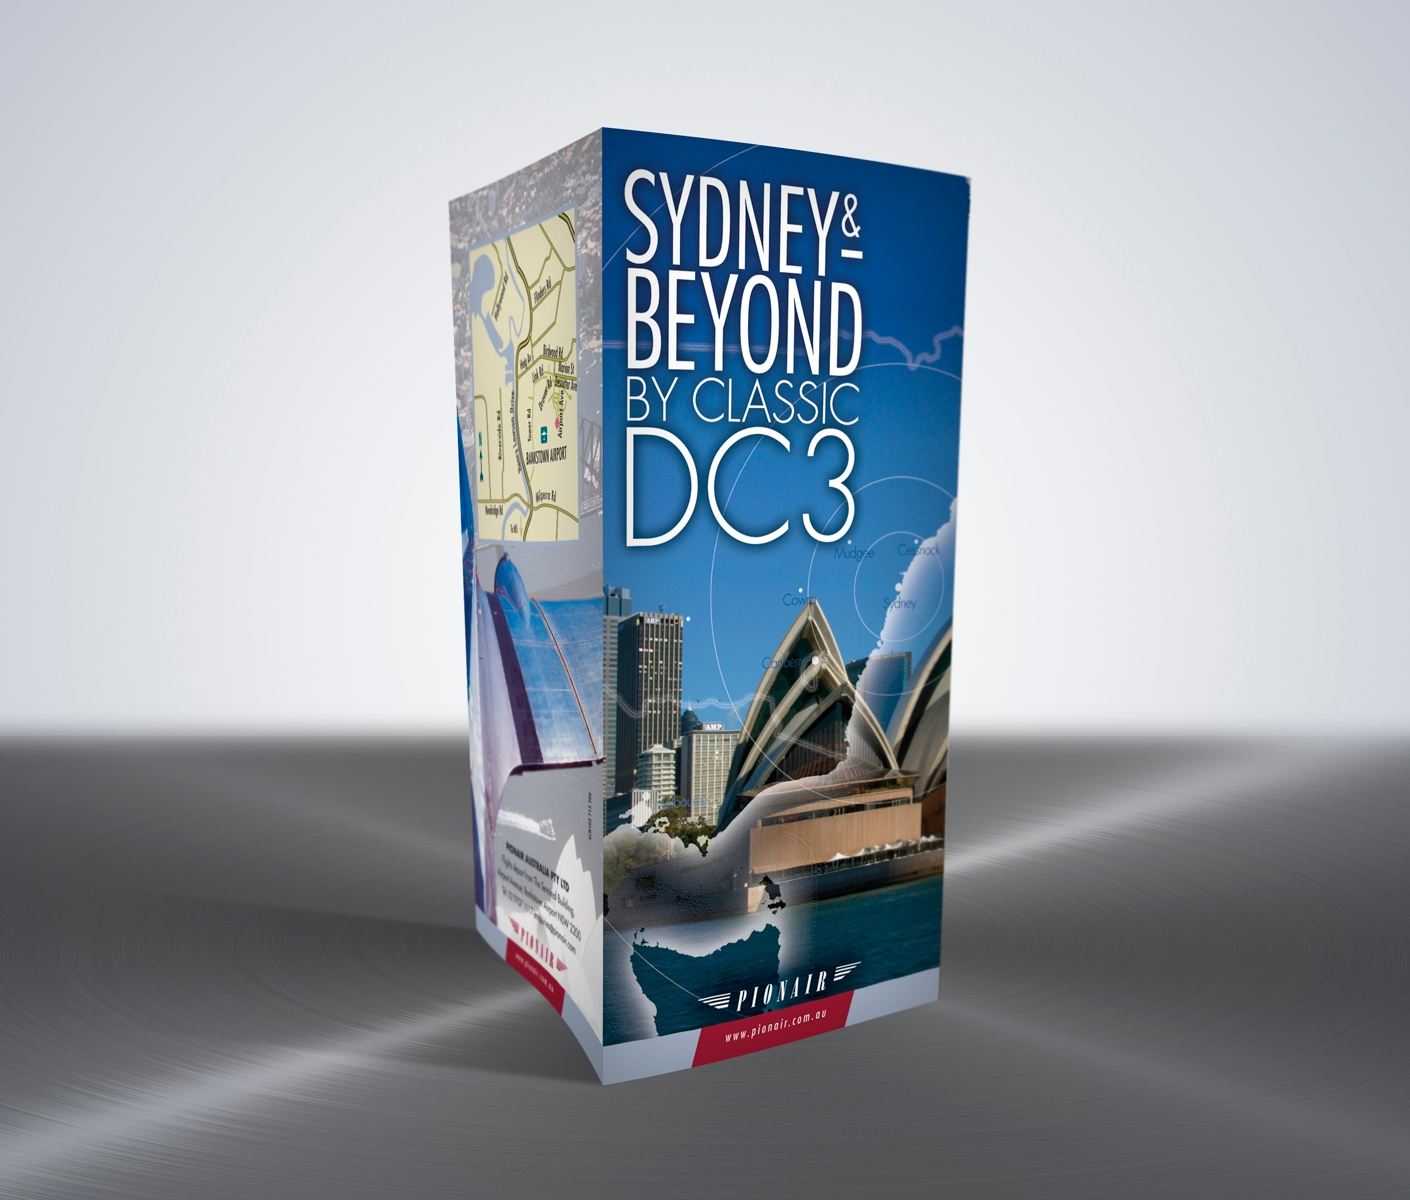 Pionair Australia, Classic DC3 aviation, Sydney & Beyond, 8-panel, gate-fold, DLE tourism brochure